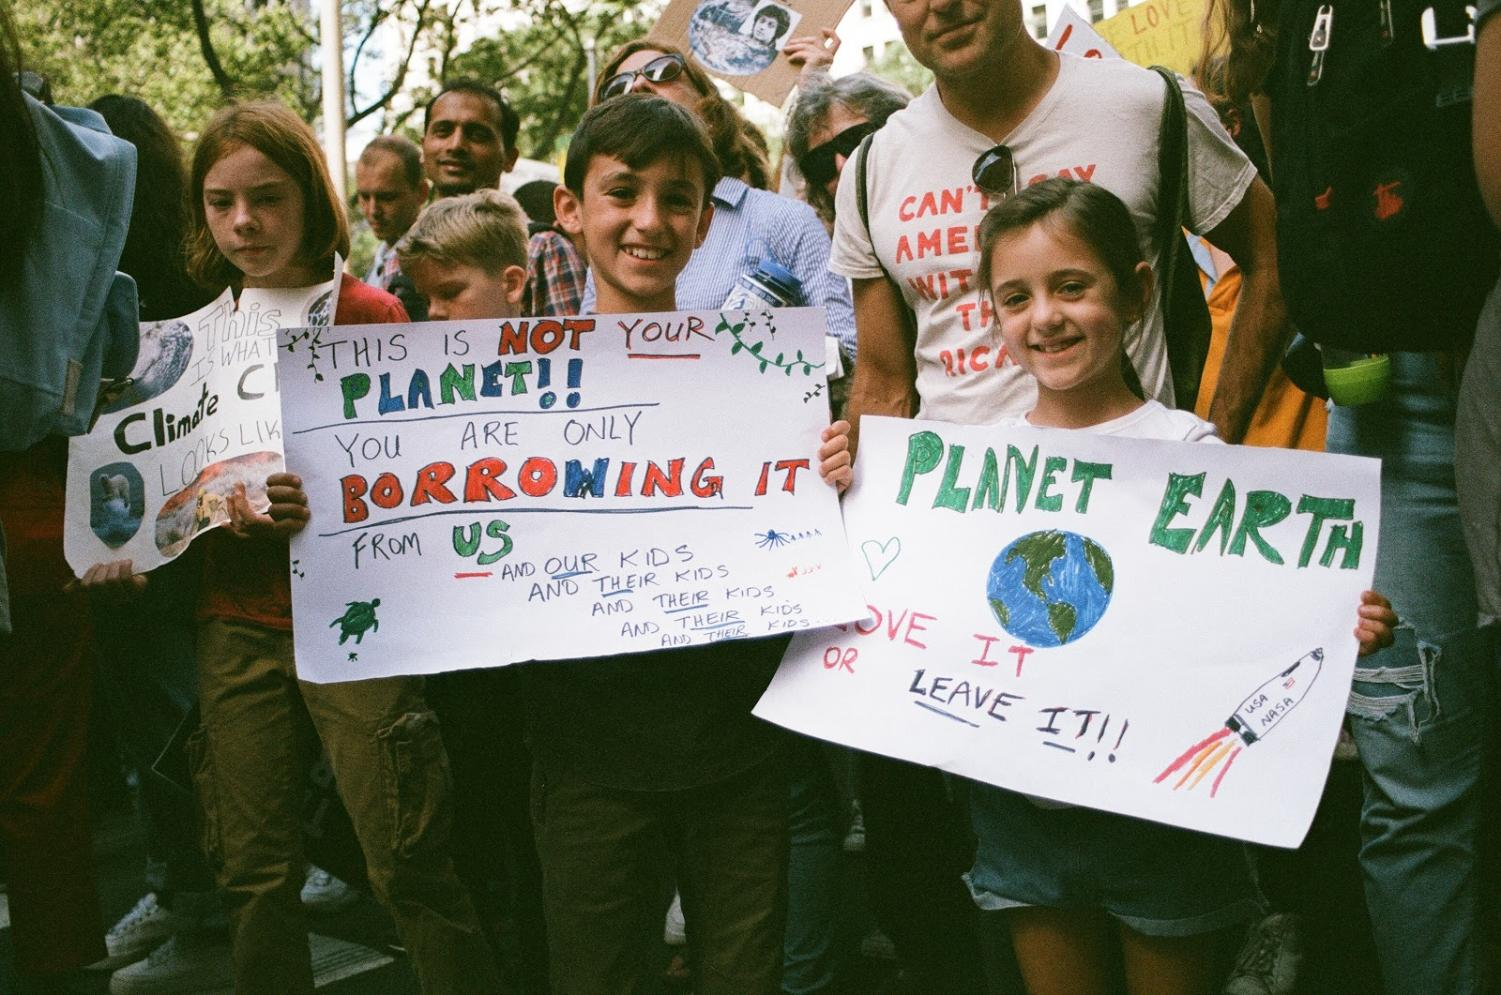 Children skip school with the DOE's encouragements to protest for their futures at the NYC Climate Strike.